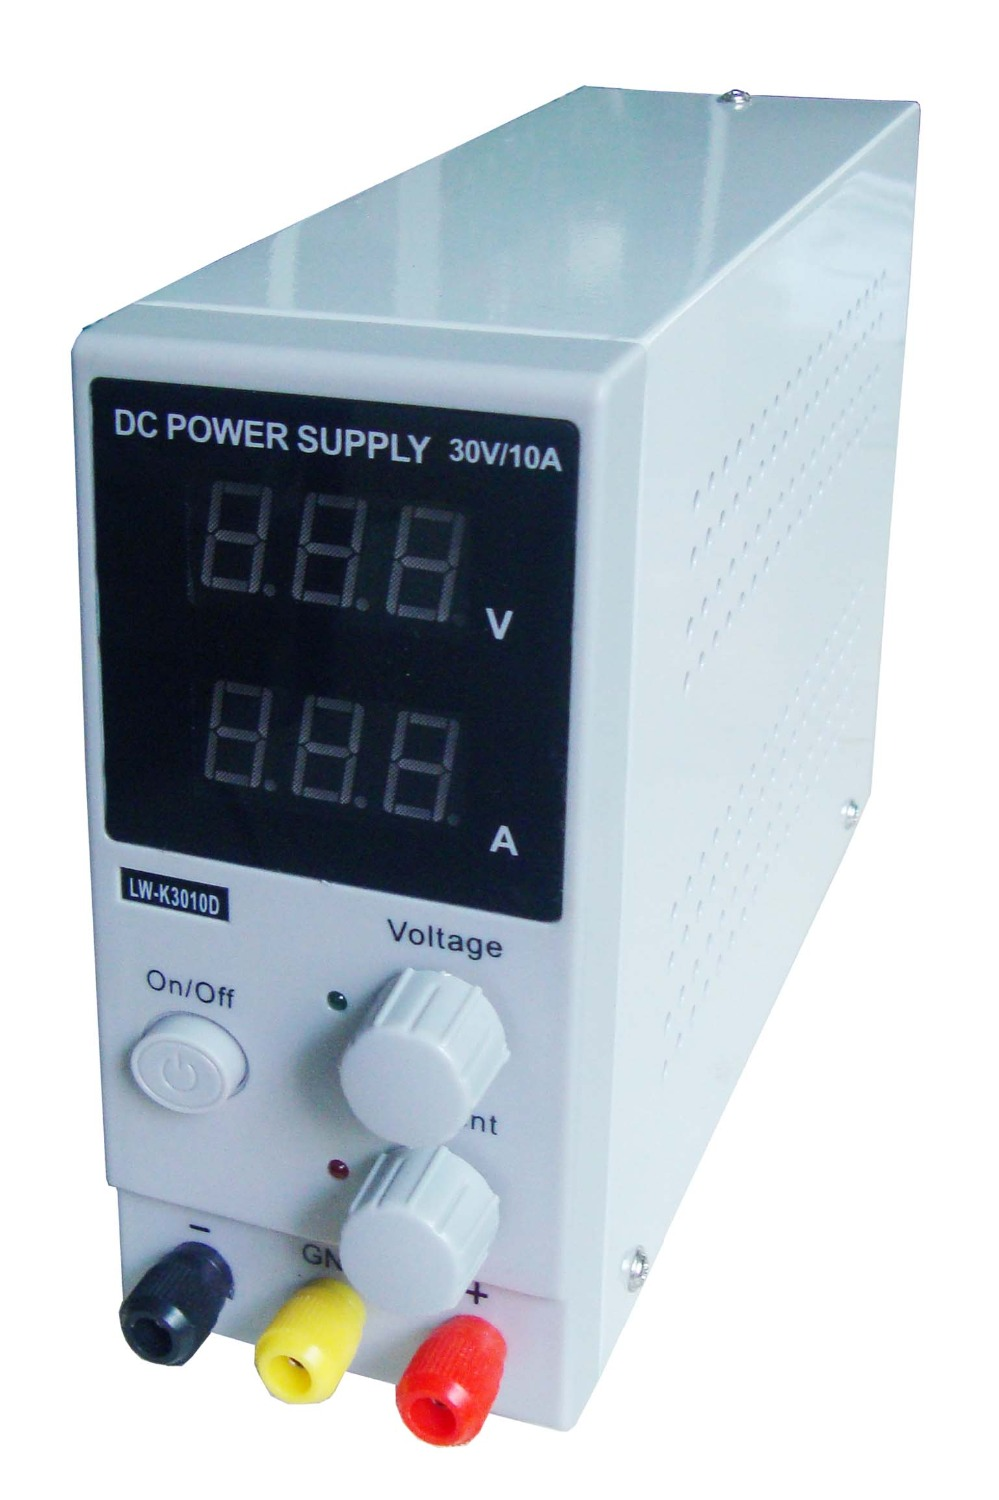 LW DC power supply 30V 10A Mini Adjustable Digital DC power supplise Switching Power supply 3 digits for US EU AU Plug 110-240V new adjustable dc 3 24v 2a adapter power supply motor speed controller with eu plug for electric hand drill